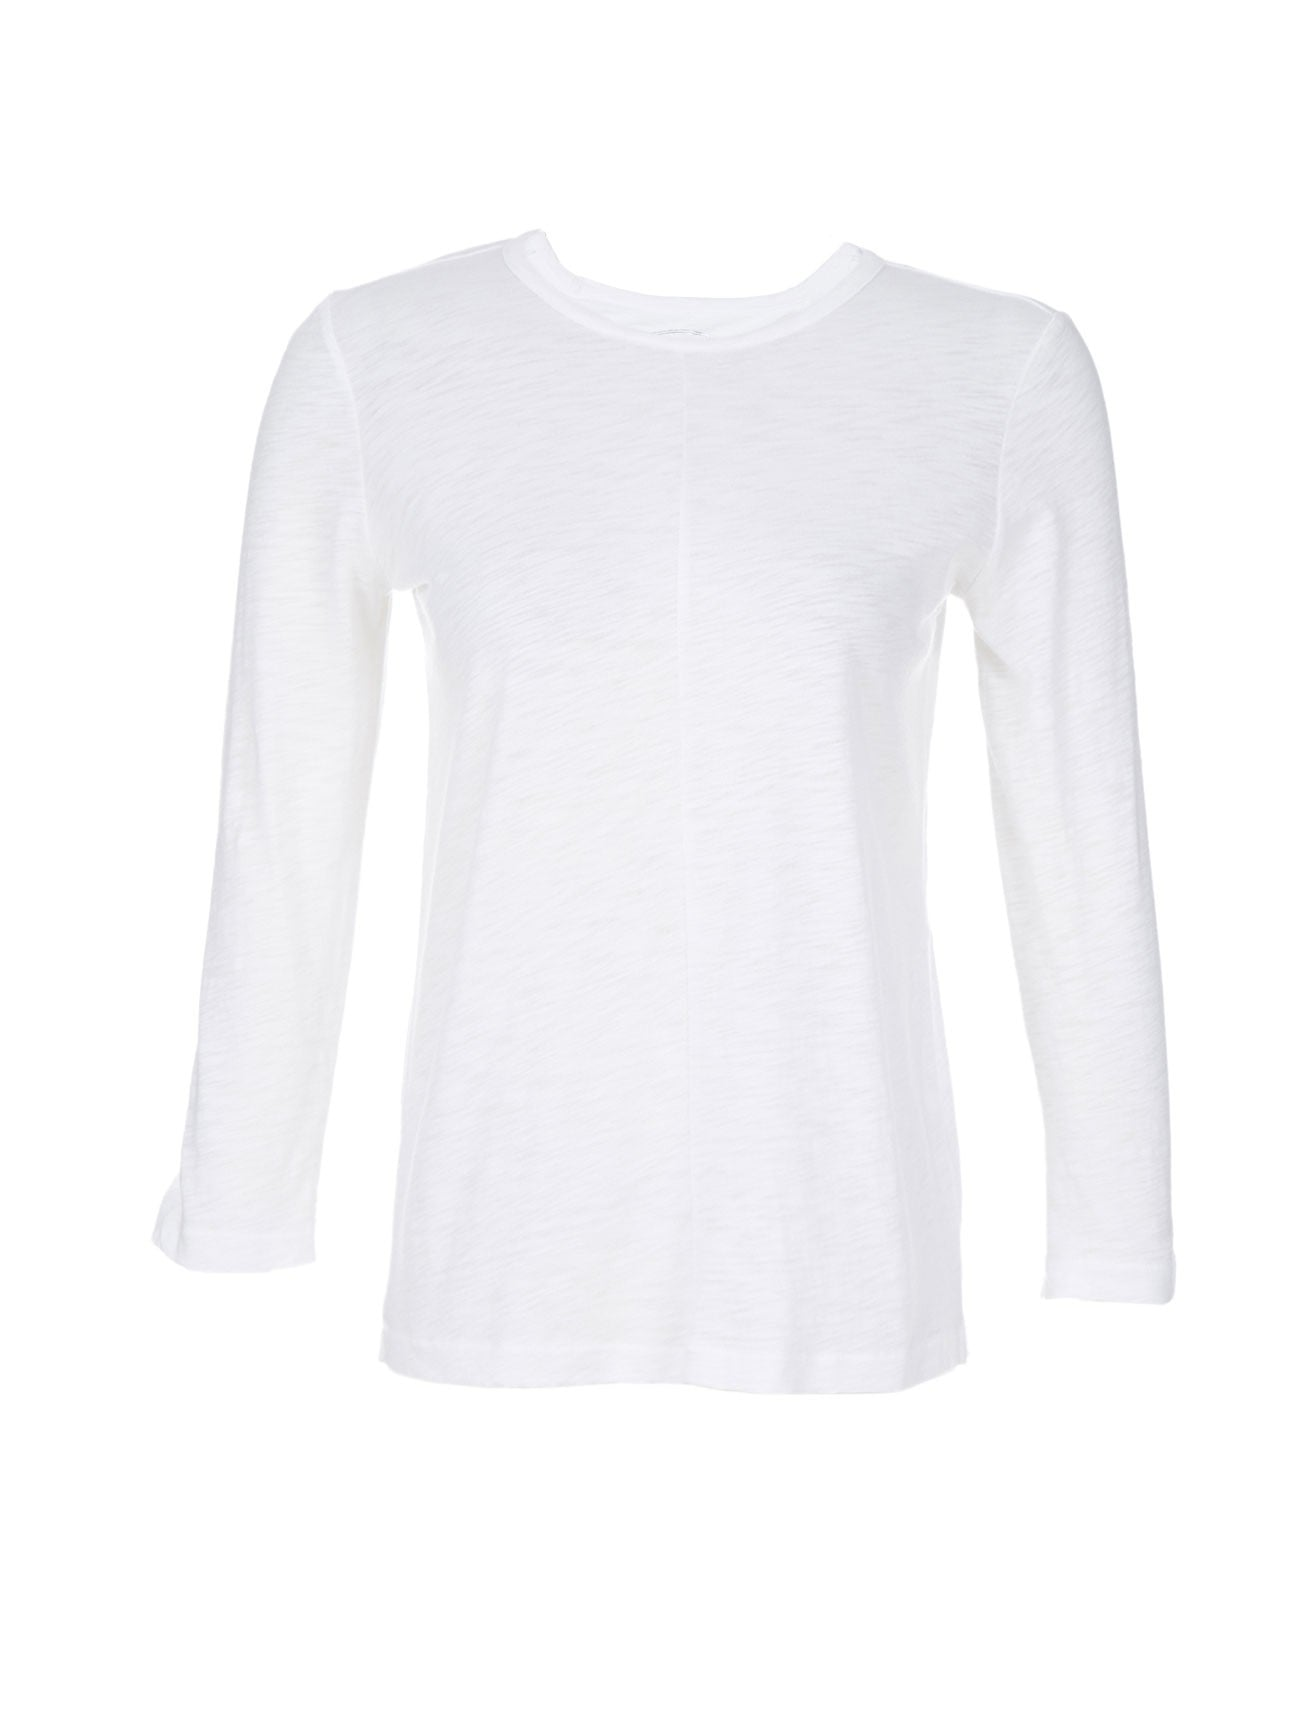 Scoop Three-Quarter-Sleeved Top